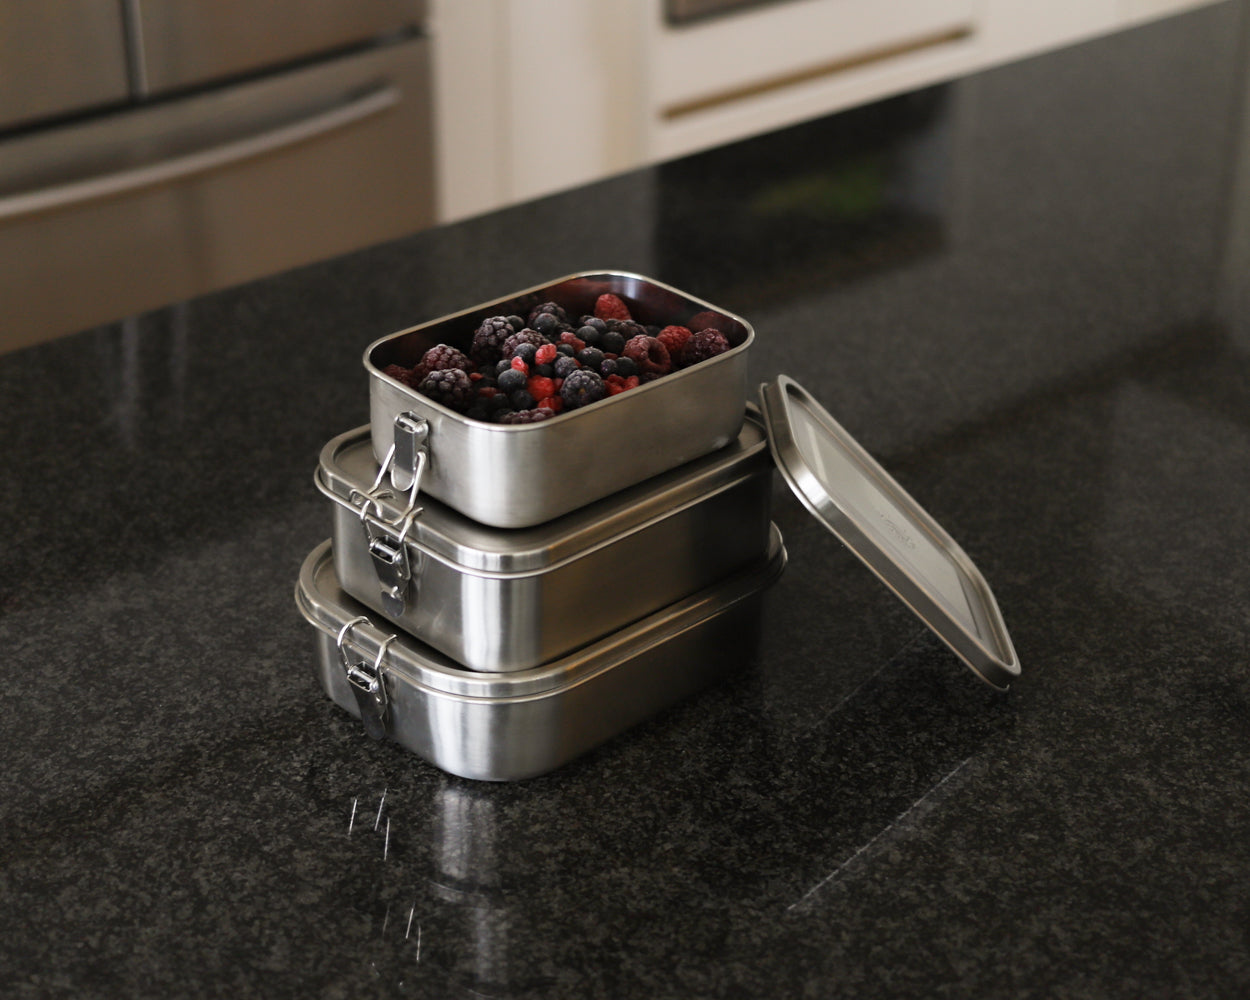 frozen fruit in stainless steel containers by Net Zero co